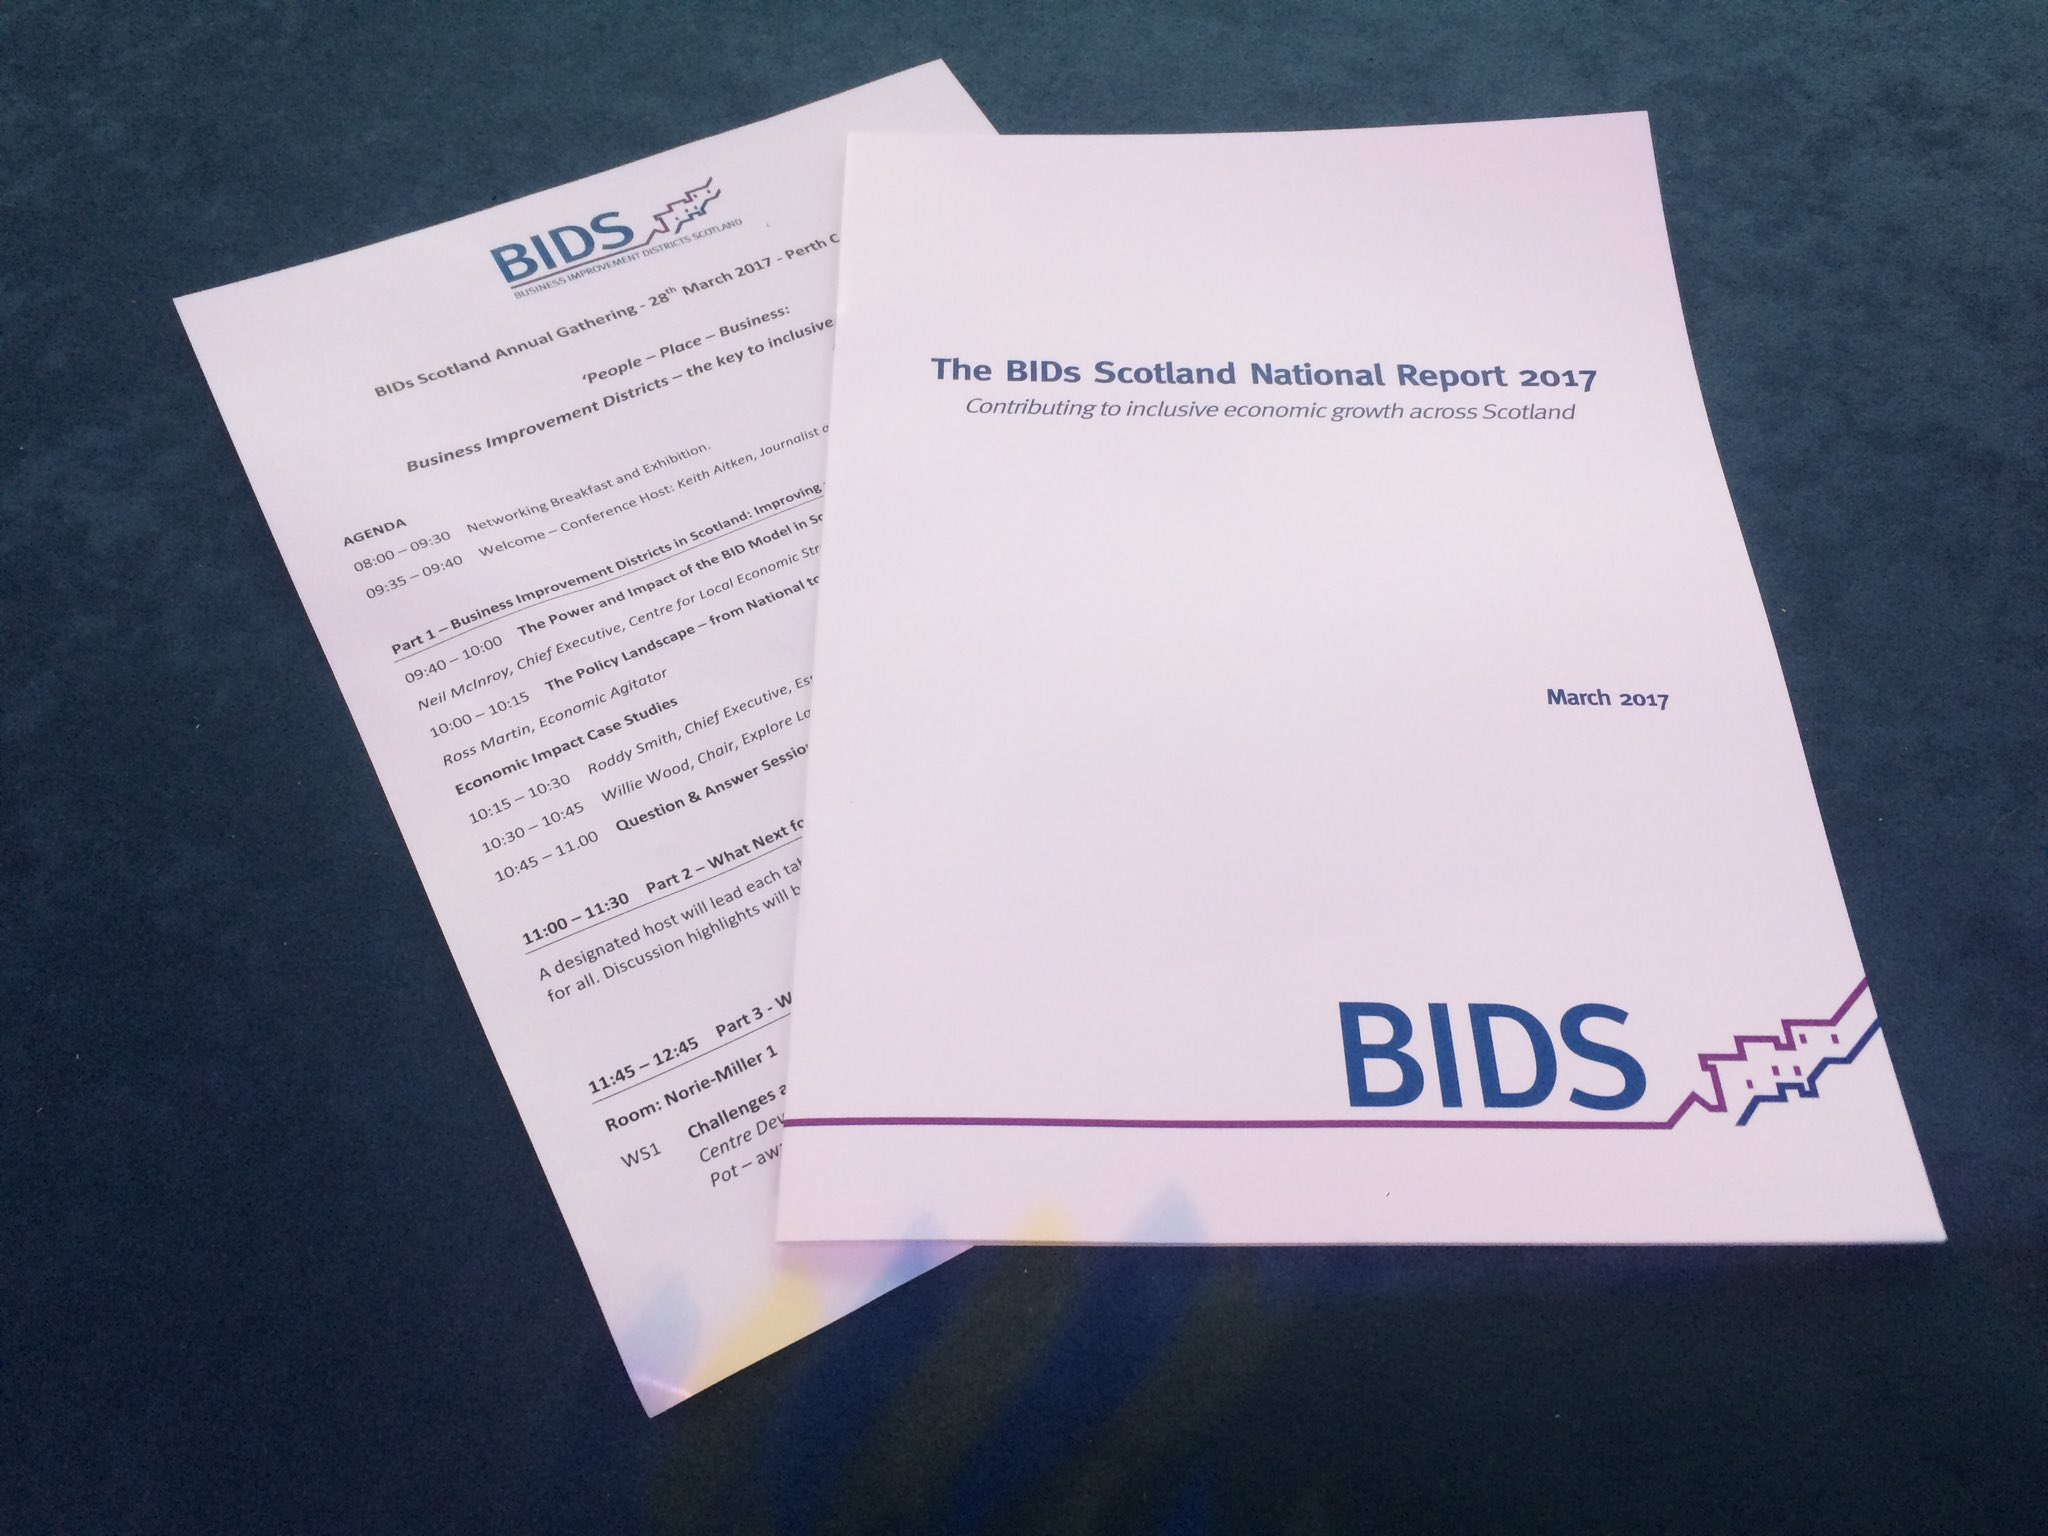 Our National Report on BIDs in Scotland 2017 was published this week, check it out here: https://t.co/ZjhPoX2sss #BIDSGathering https://t.co/353uuTAMnk